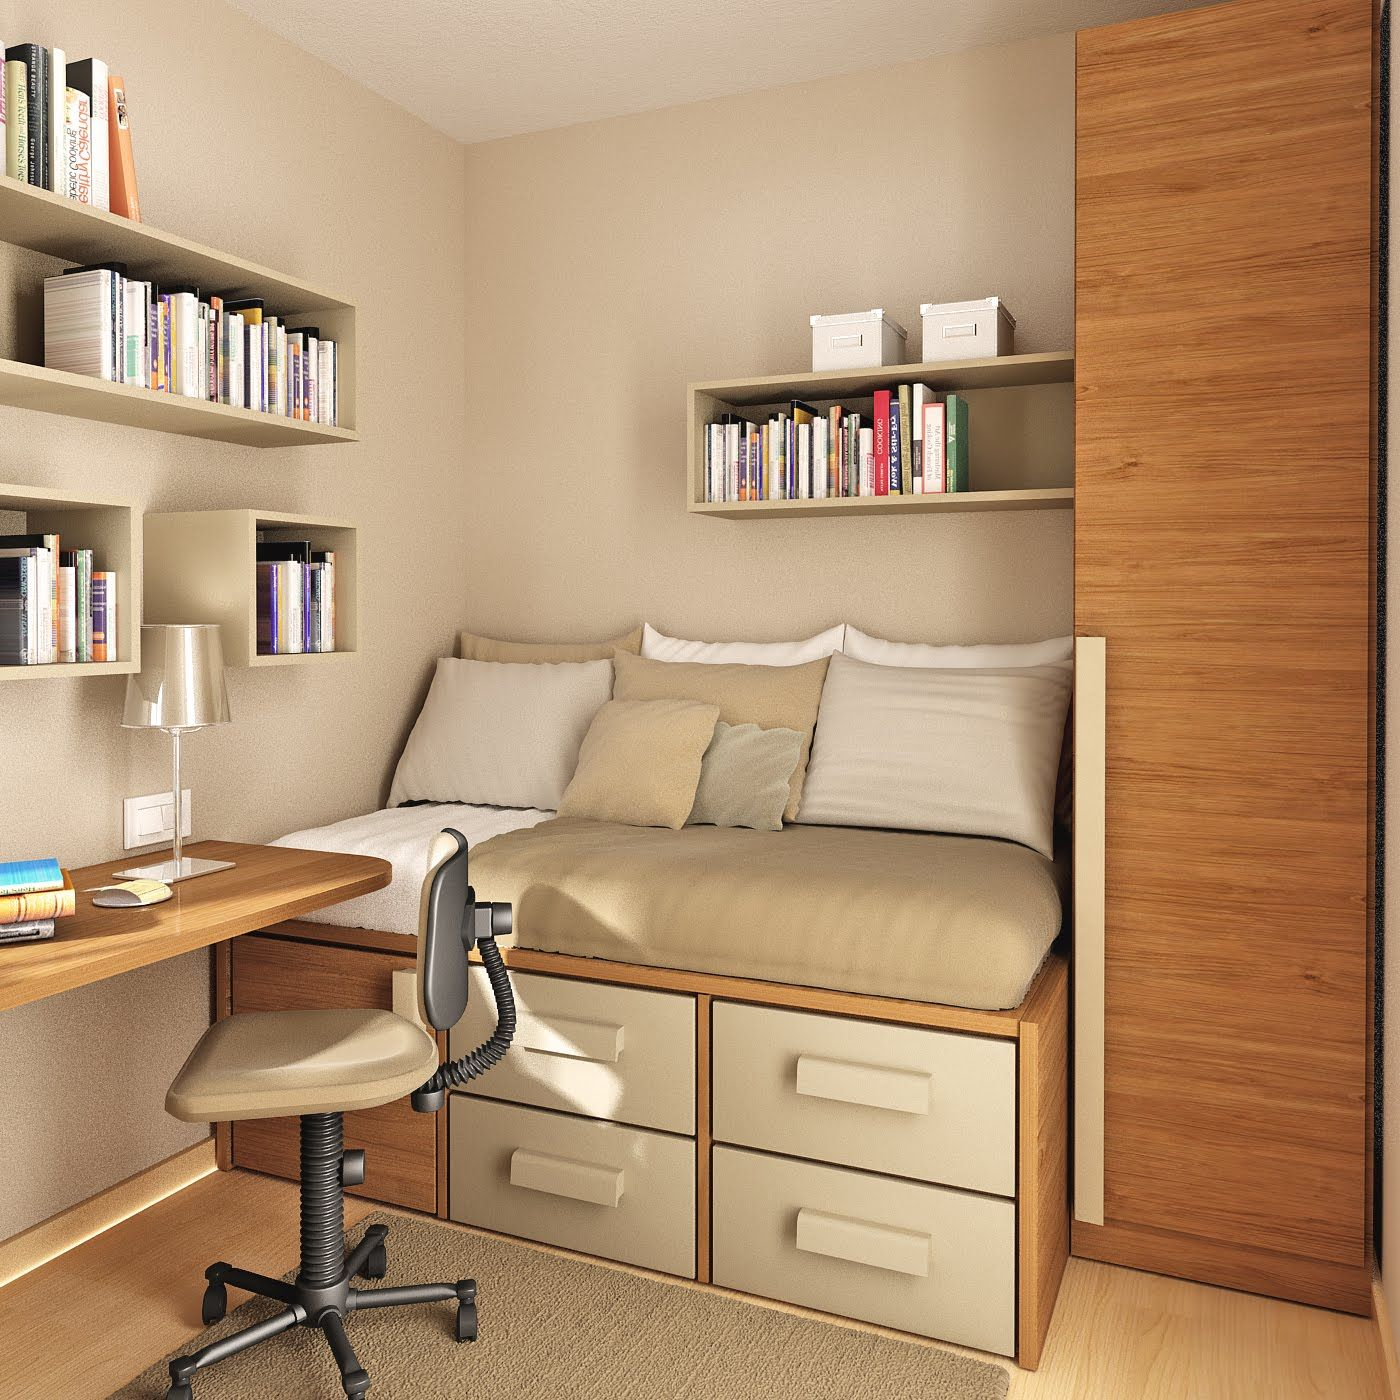 Bedroom Design Ideas On A Budget Bench For Bedroom With Storage Bedroom Office Ideas Design Of Bedroom Furniture: Study Room Design Ideas Singapore - Google Search